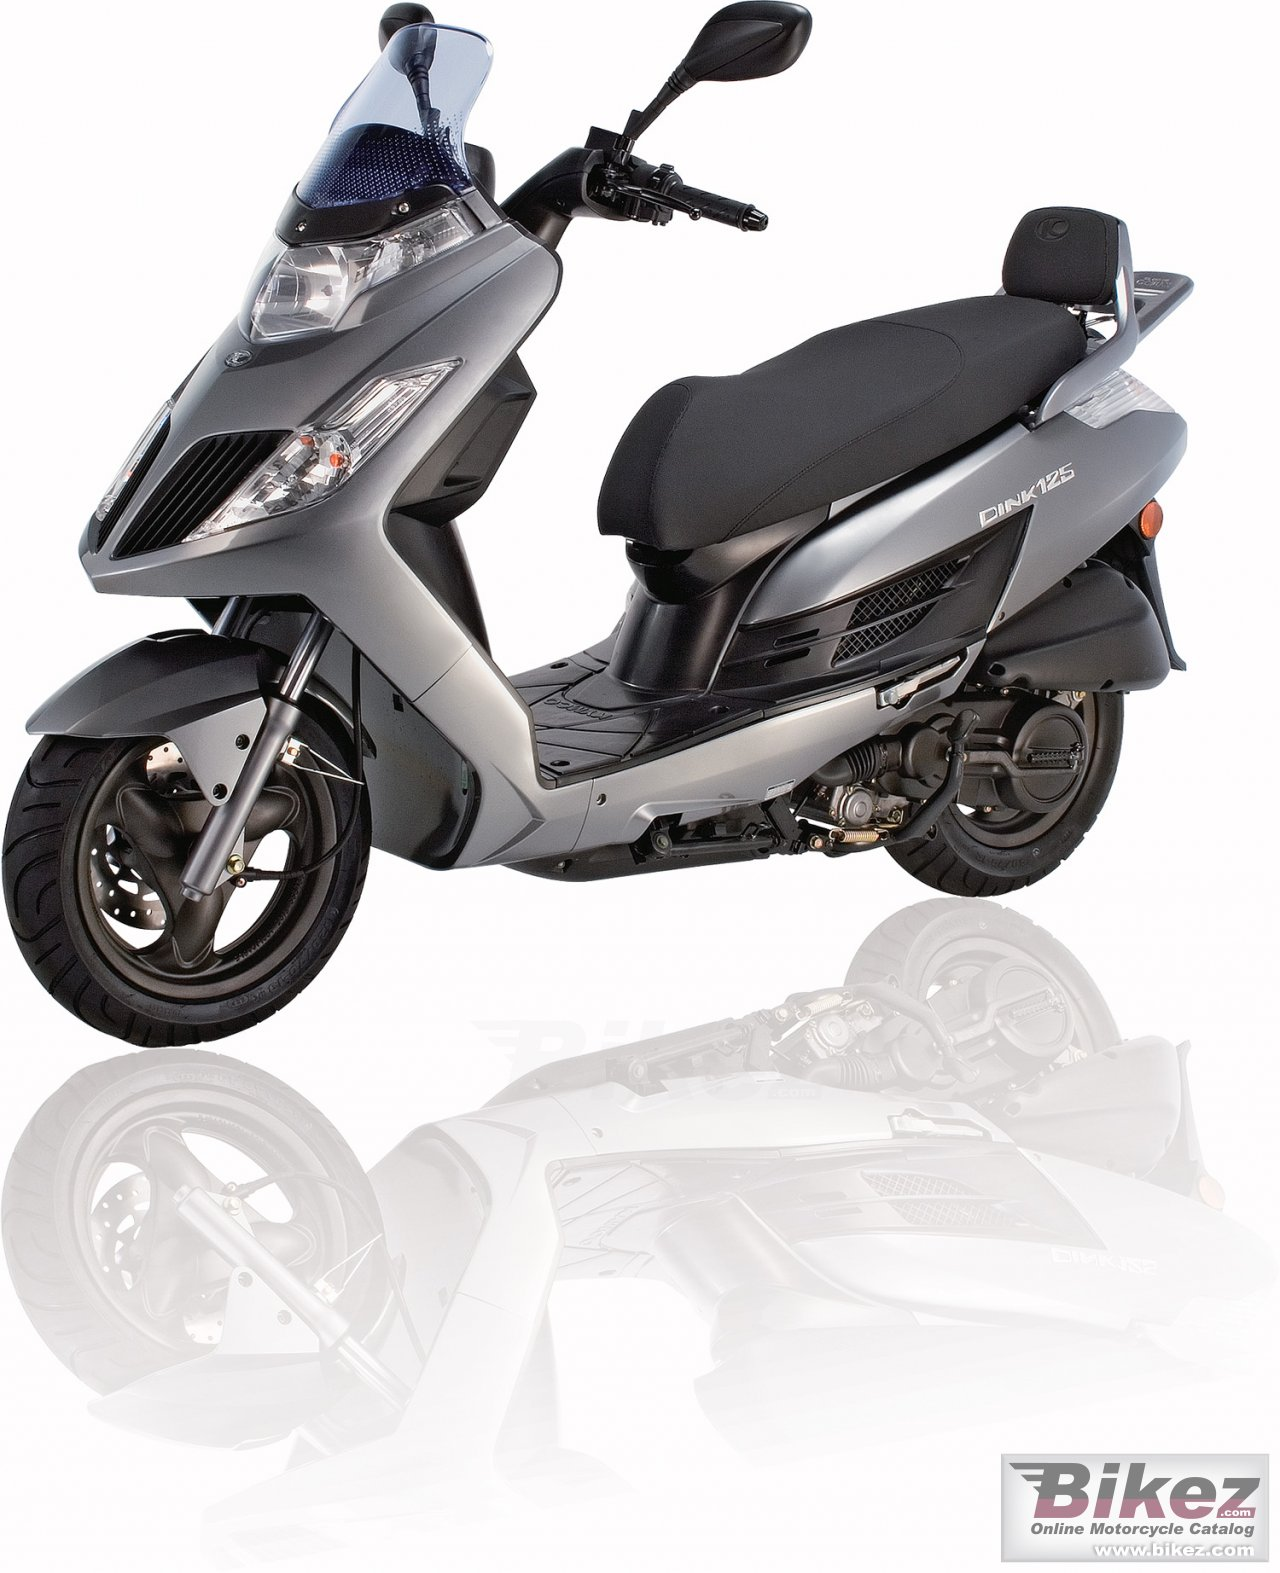 Big Kymco new dink (e3) picture and wallpaper from Bikez.com